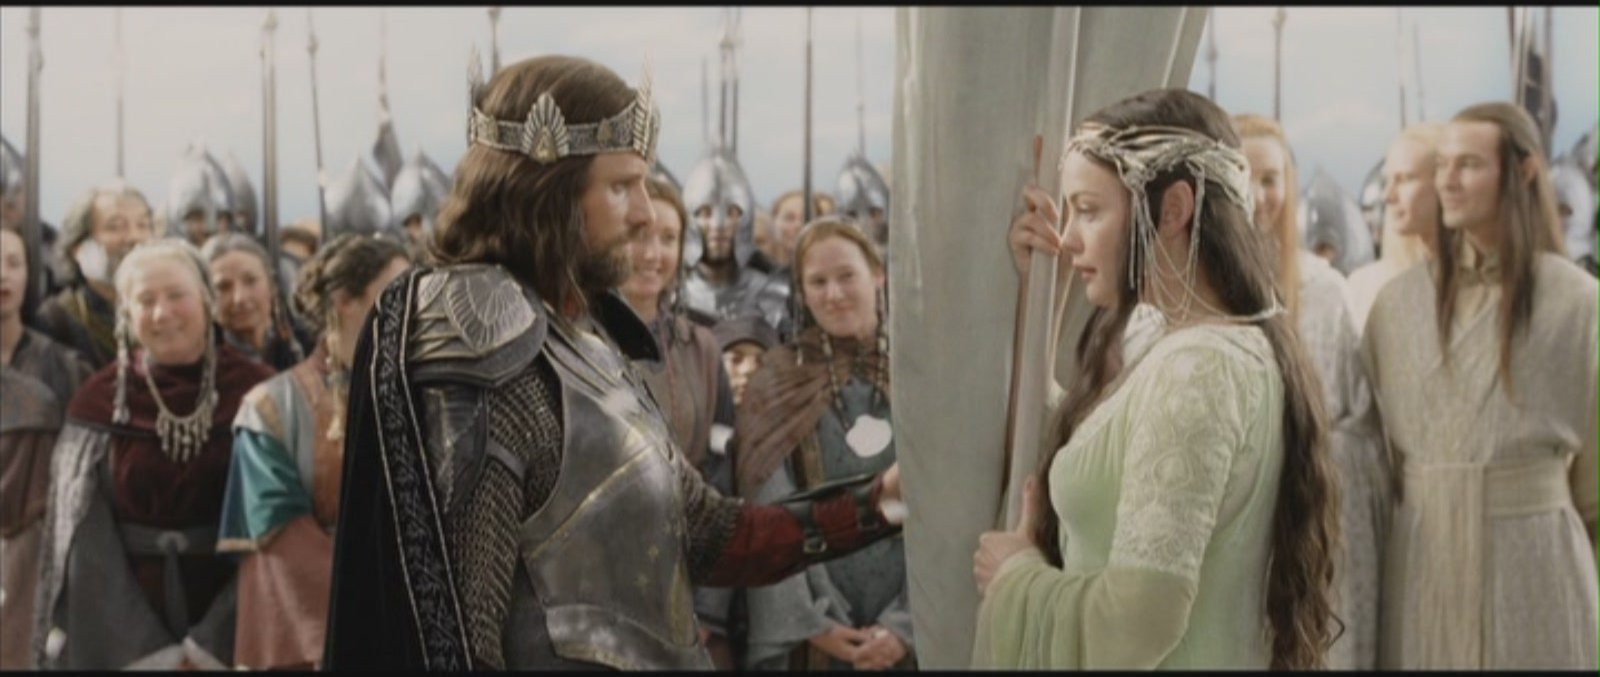 Le Seigneur des Anneaux / The Hobbit #4 Arwen-and-Aragorn-Lord-of-the-Rings-Return-of-the-King-aragorn-and-arwen-11683888-1600-677